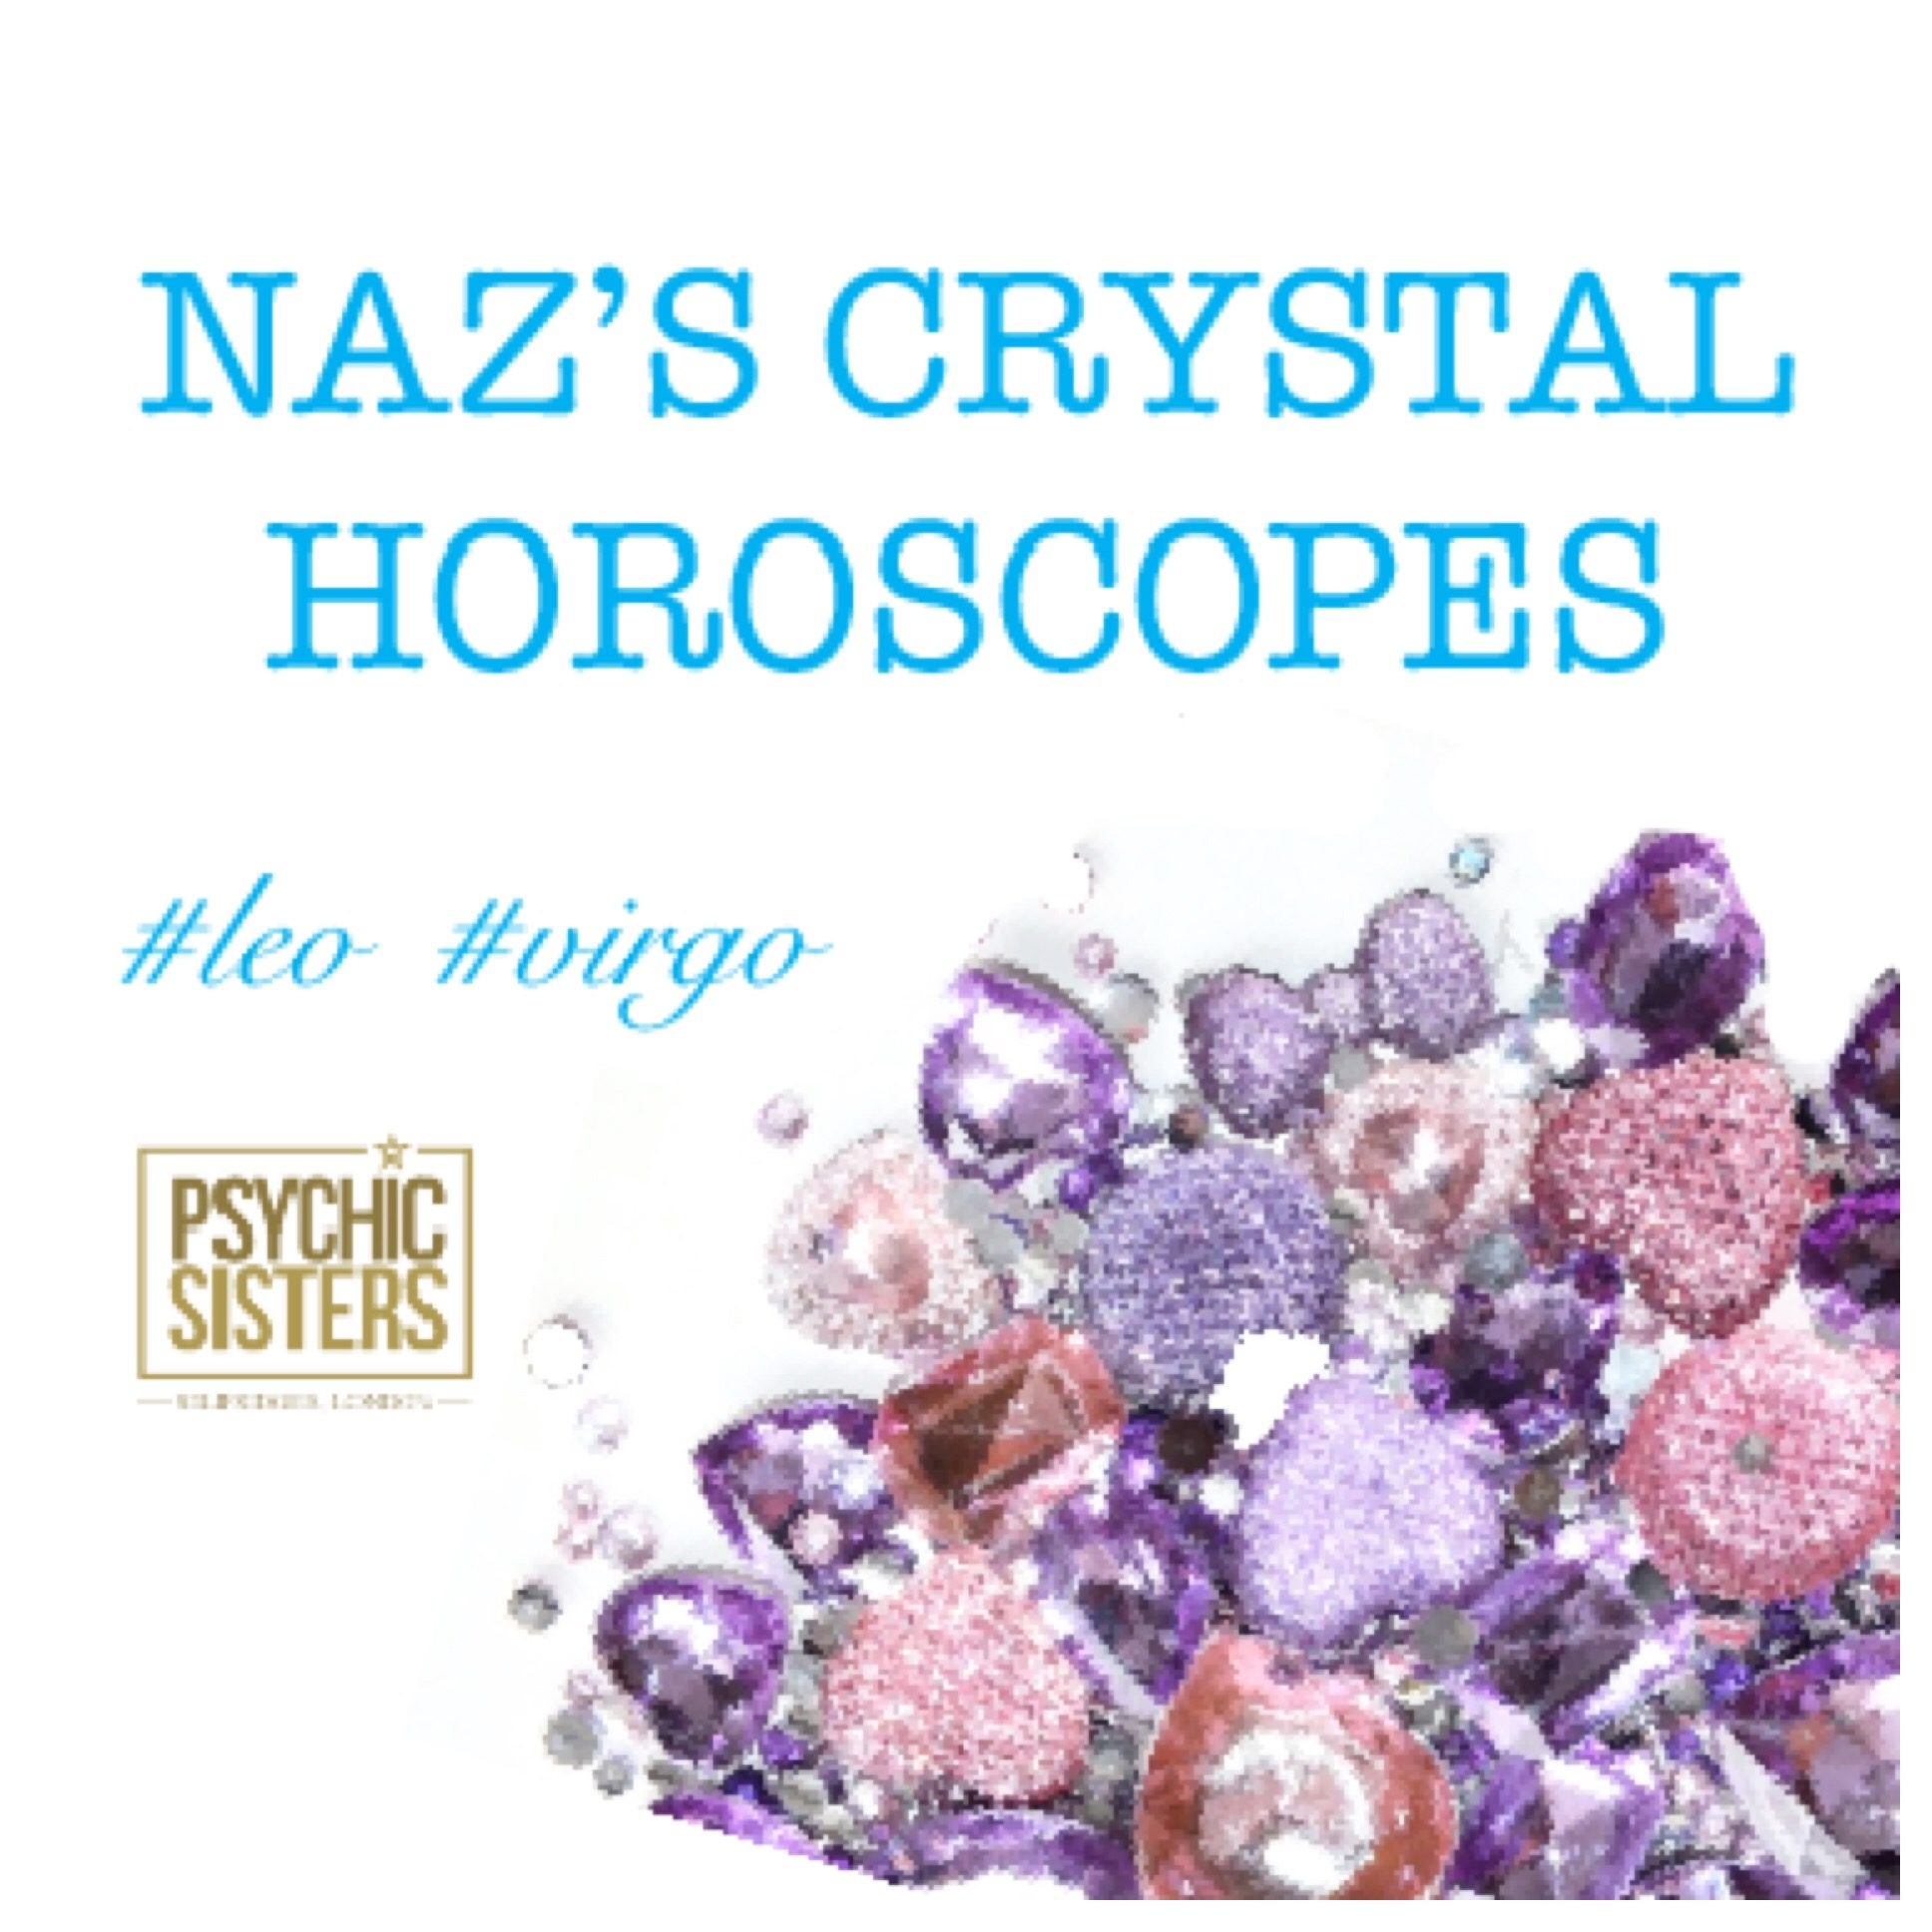 Naz's crystal horoscopes 22nd - 28th April 2018